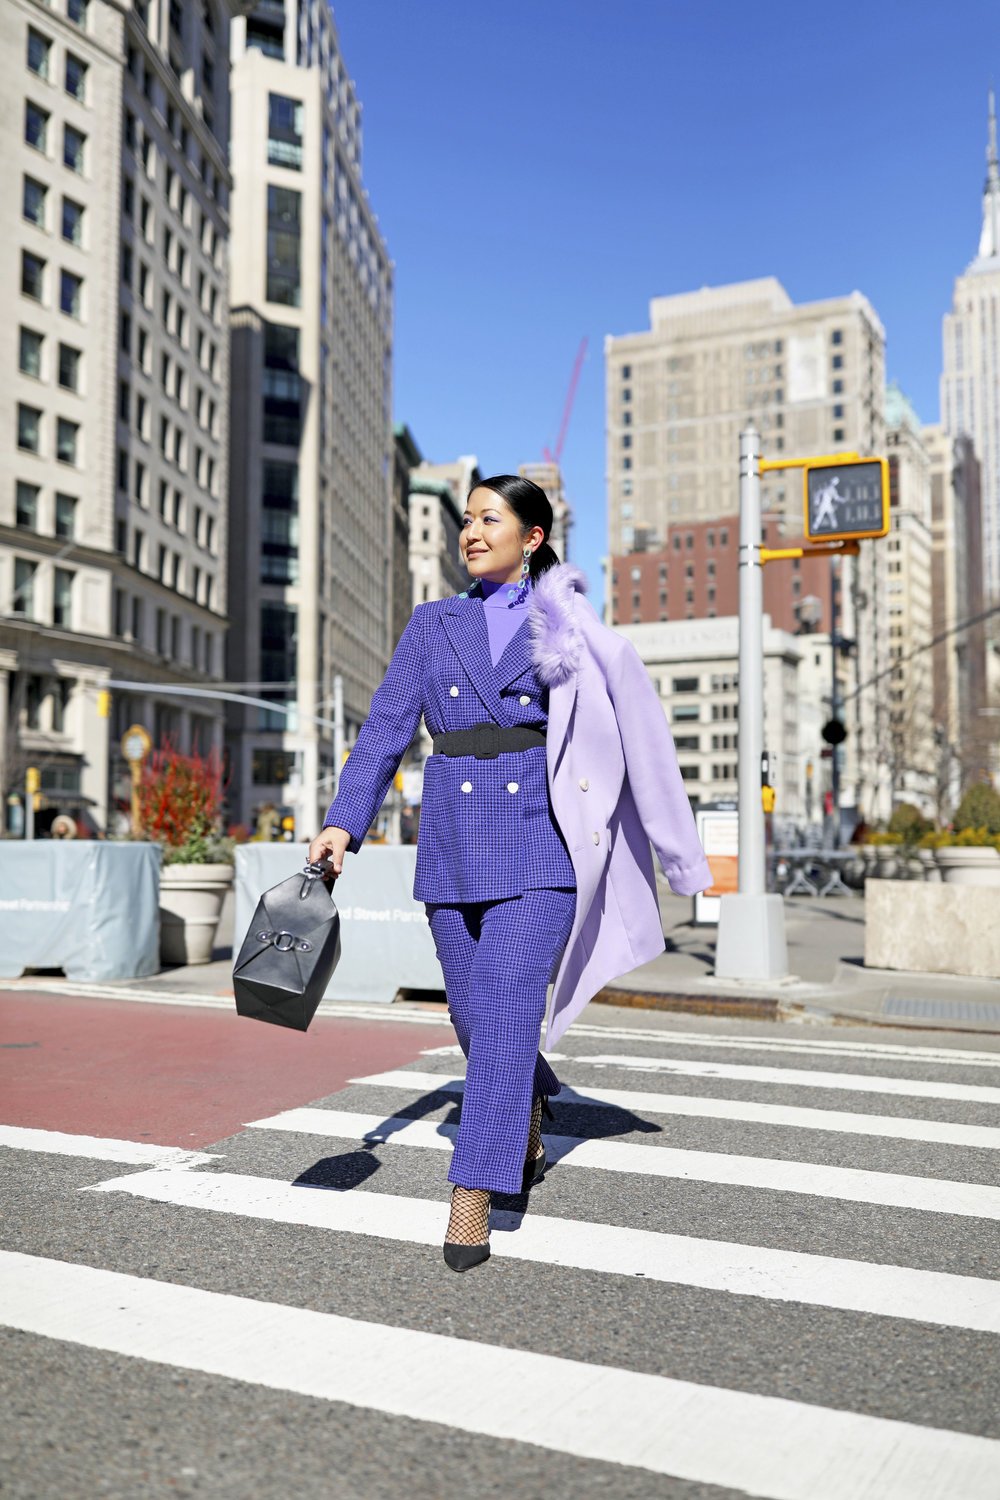 Purple pant suit monochrome outfit